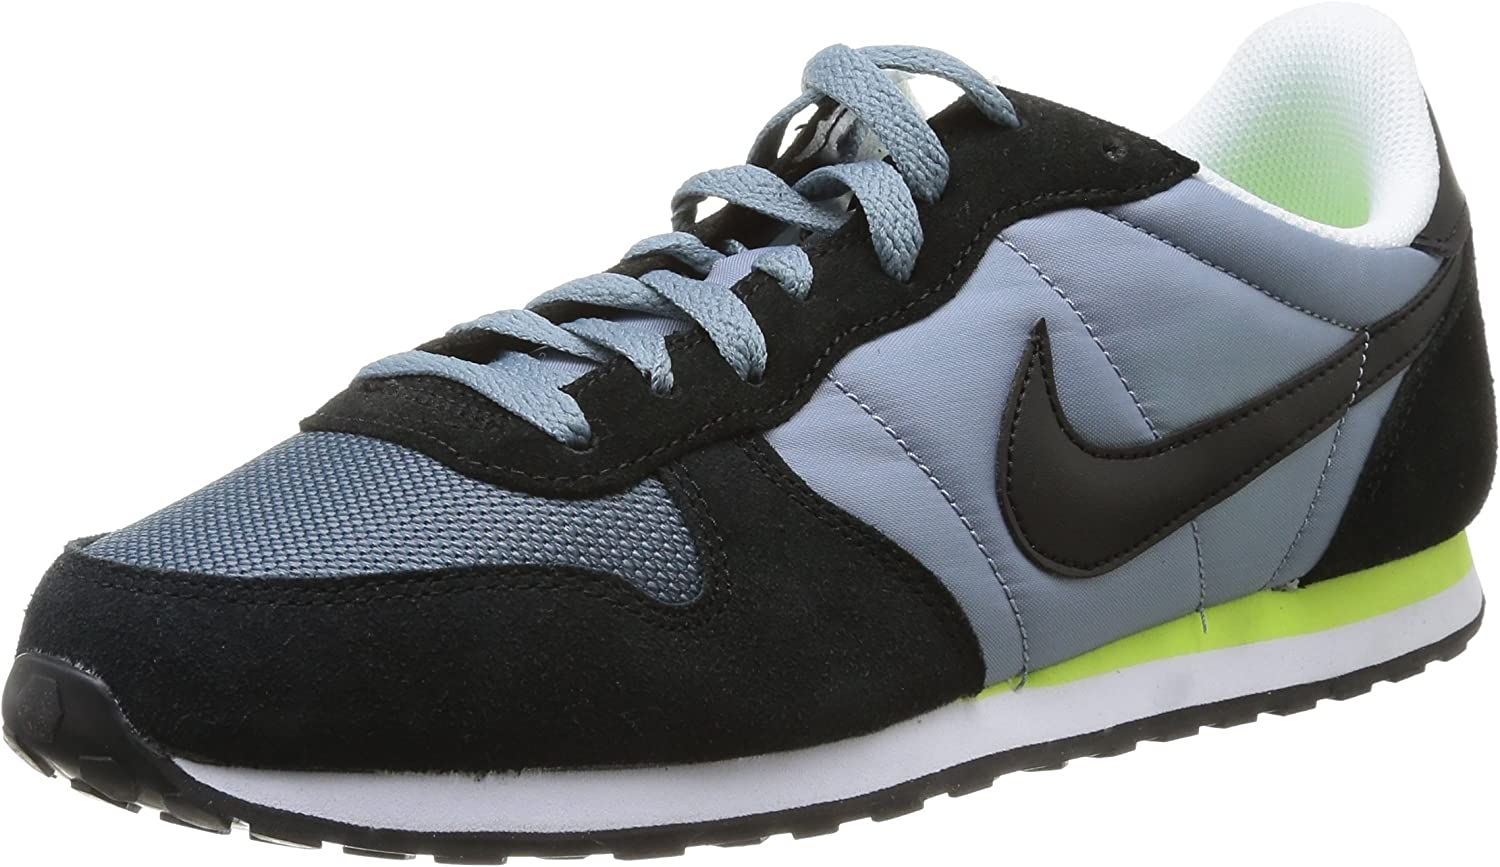 Nike Men's Genicco Training Running shoes